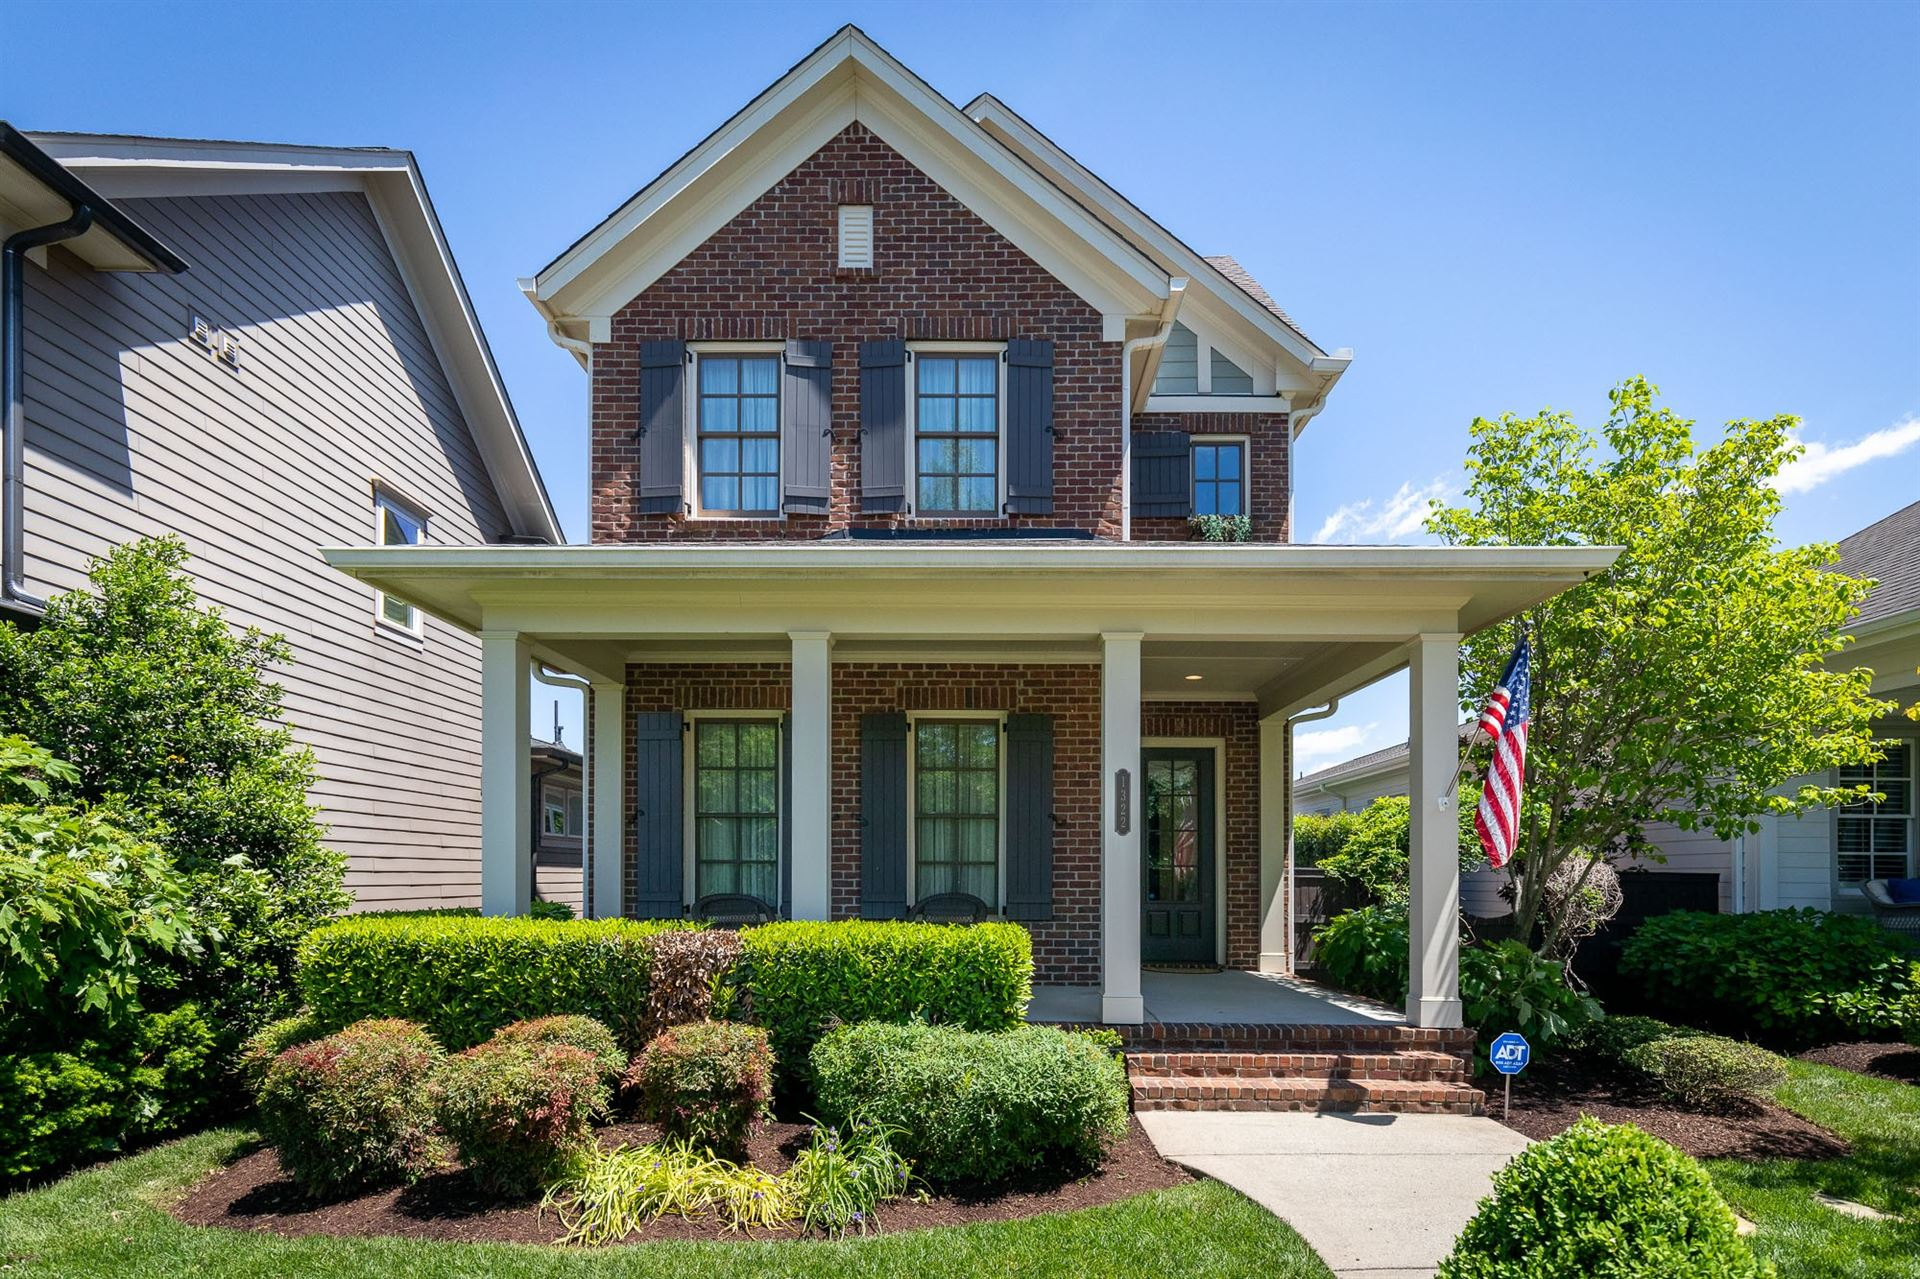 1322 Jewell Ave, Franklin, TN 37064 - MLS#: 2252670